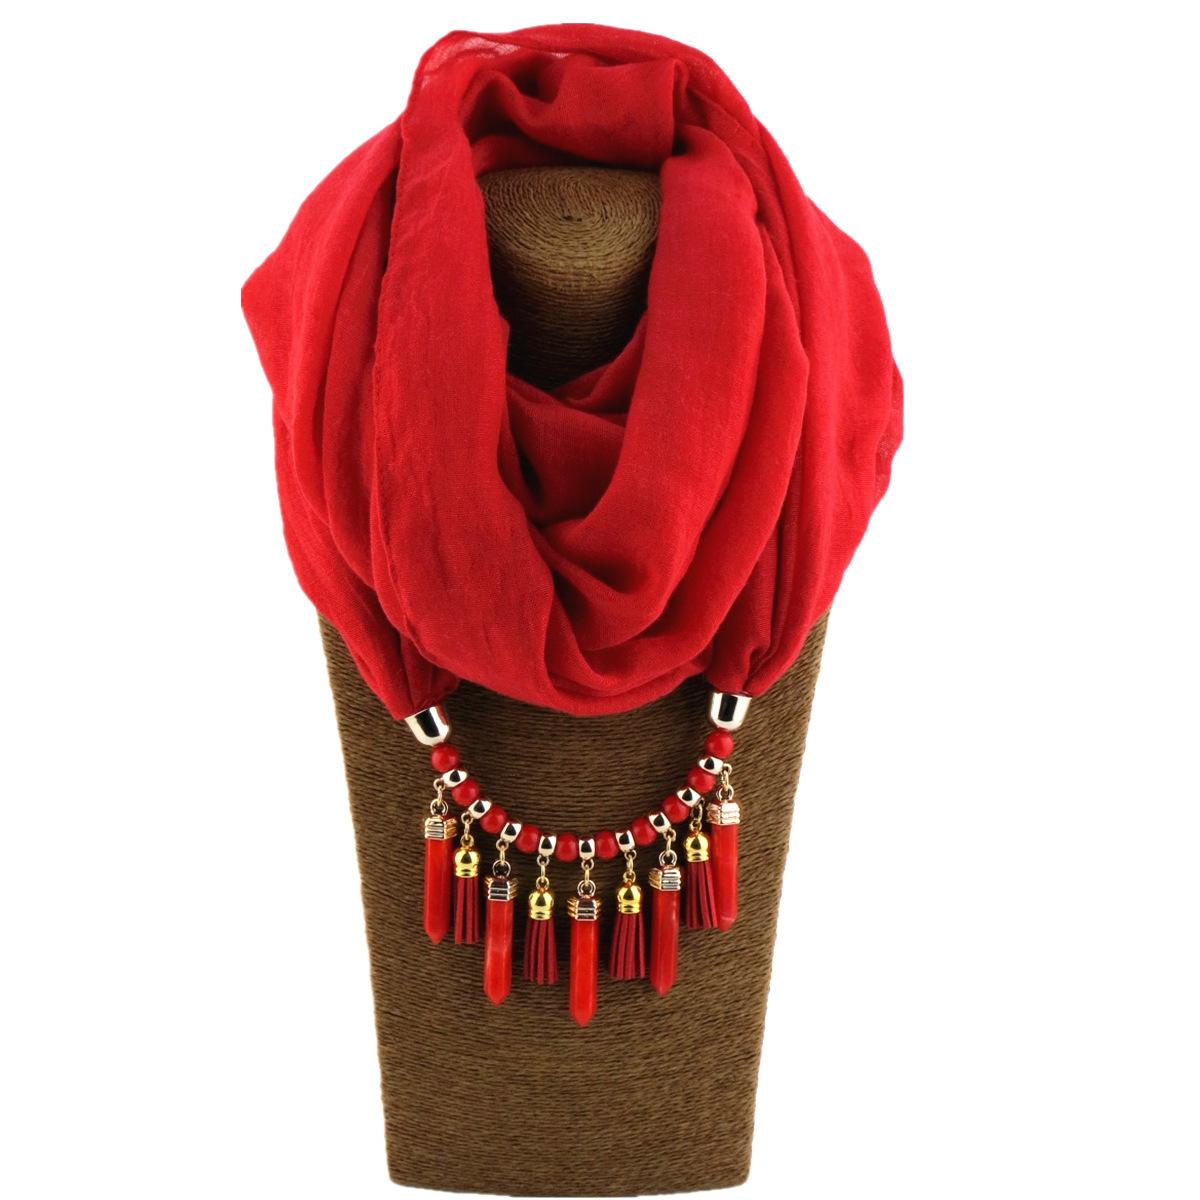 Lady scarfs jewellery cotton scarf pendant 180cmx70cm cotton pendant lady scarfs jewellery cotton scarf pendant 180cmx70cm cotton pendant scarf ornaments solid color scarf cost wholesale scarves jewelry charms scarves jewelry aloadofball Image collections